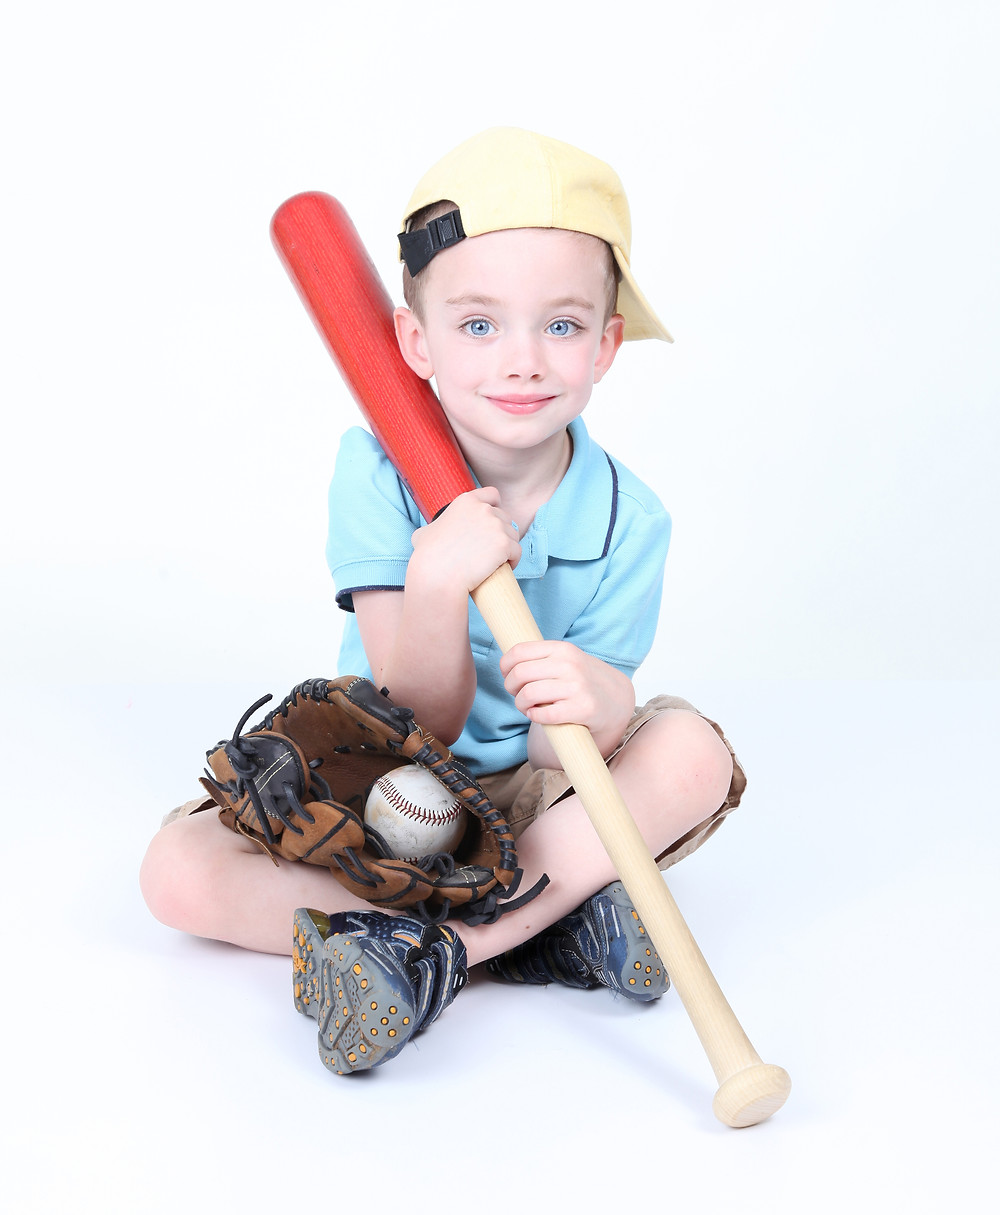 Young Boy Holding A Baseball Bat With Ball And Glove.jpg